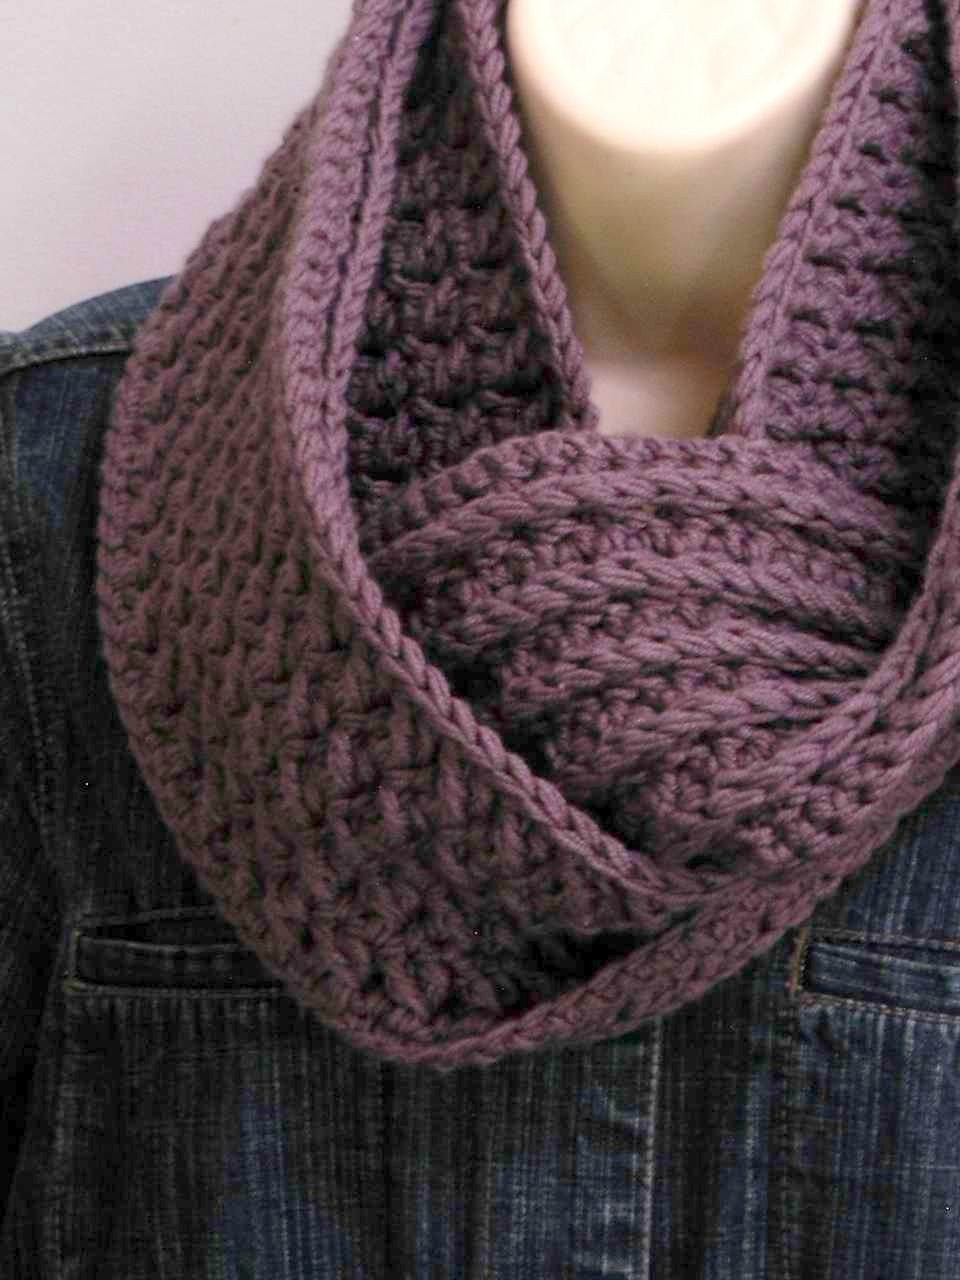 Crochet scarf pattern textured cowl crochet pattern no501 zoom bankloansurffo Choice Image